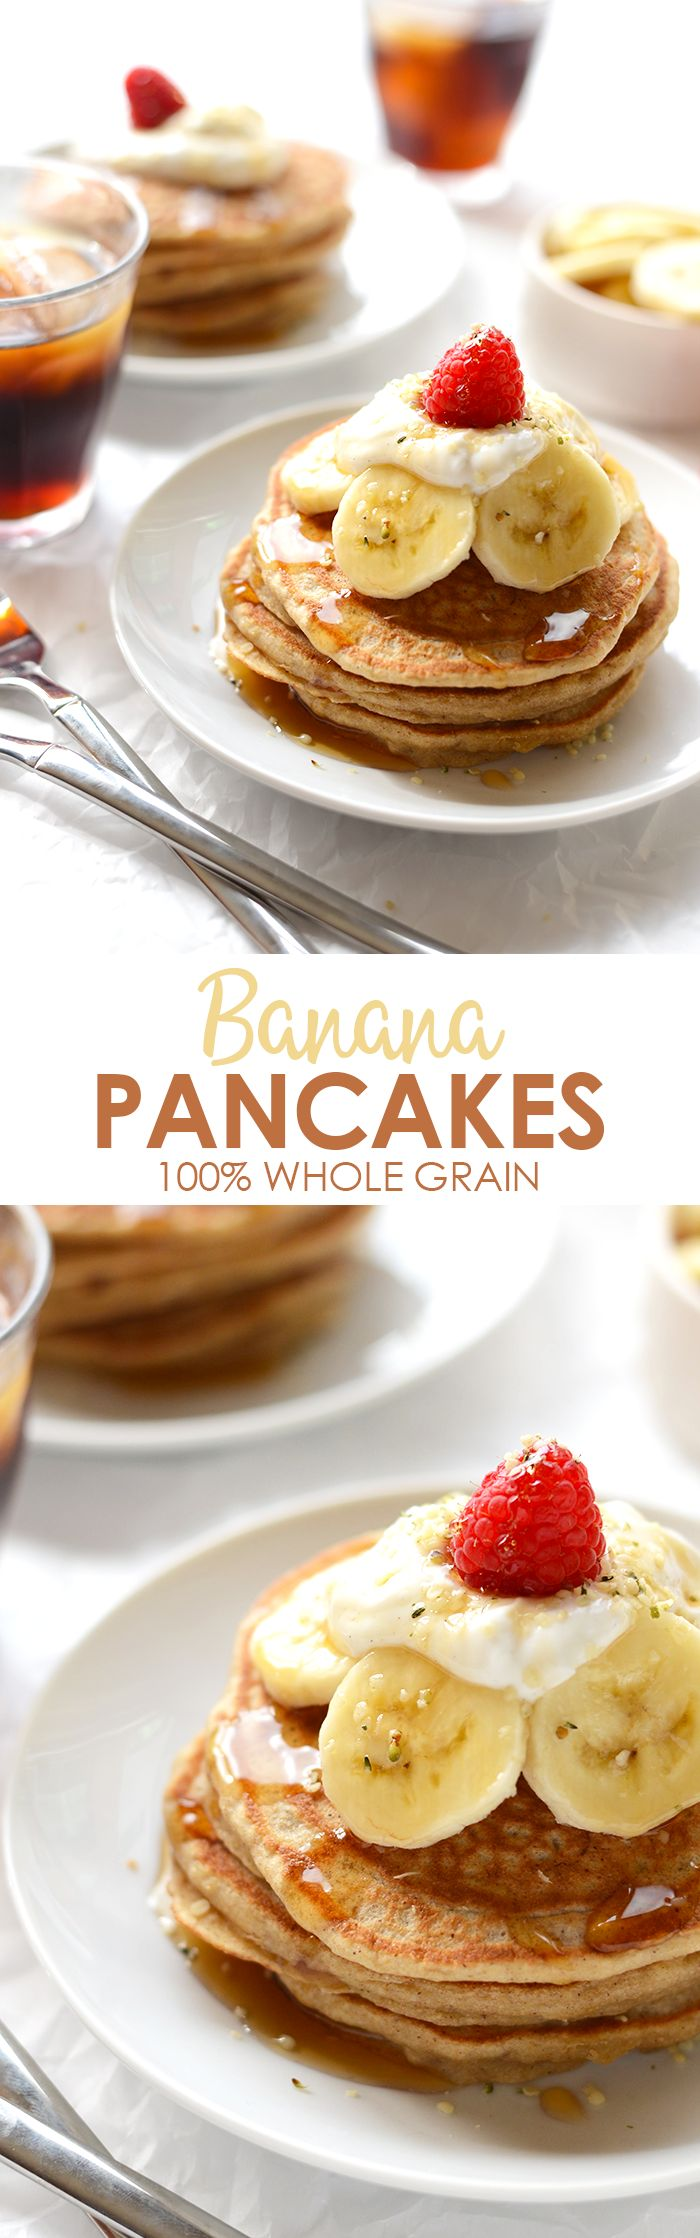 Start your morning with a stack of 100% whole-grain, no sugar-added banana pancakes made with real ingredients. Don't forget to top them with fresh fruit and Greek yogurt!